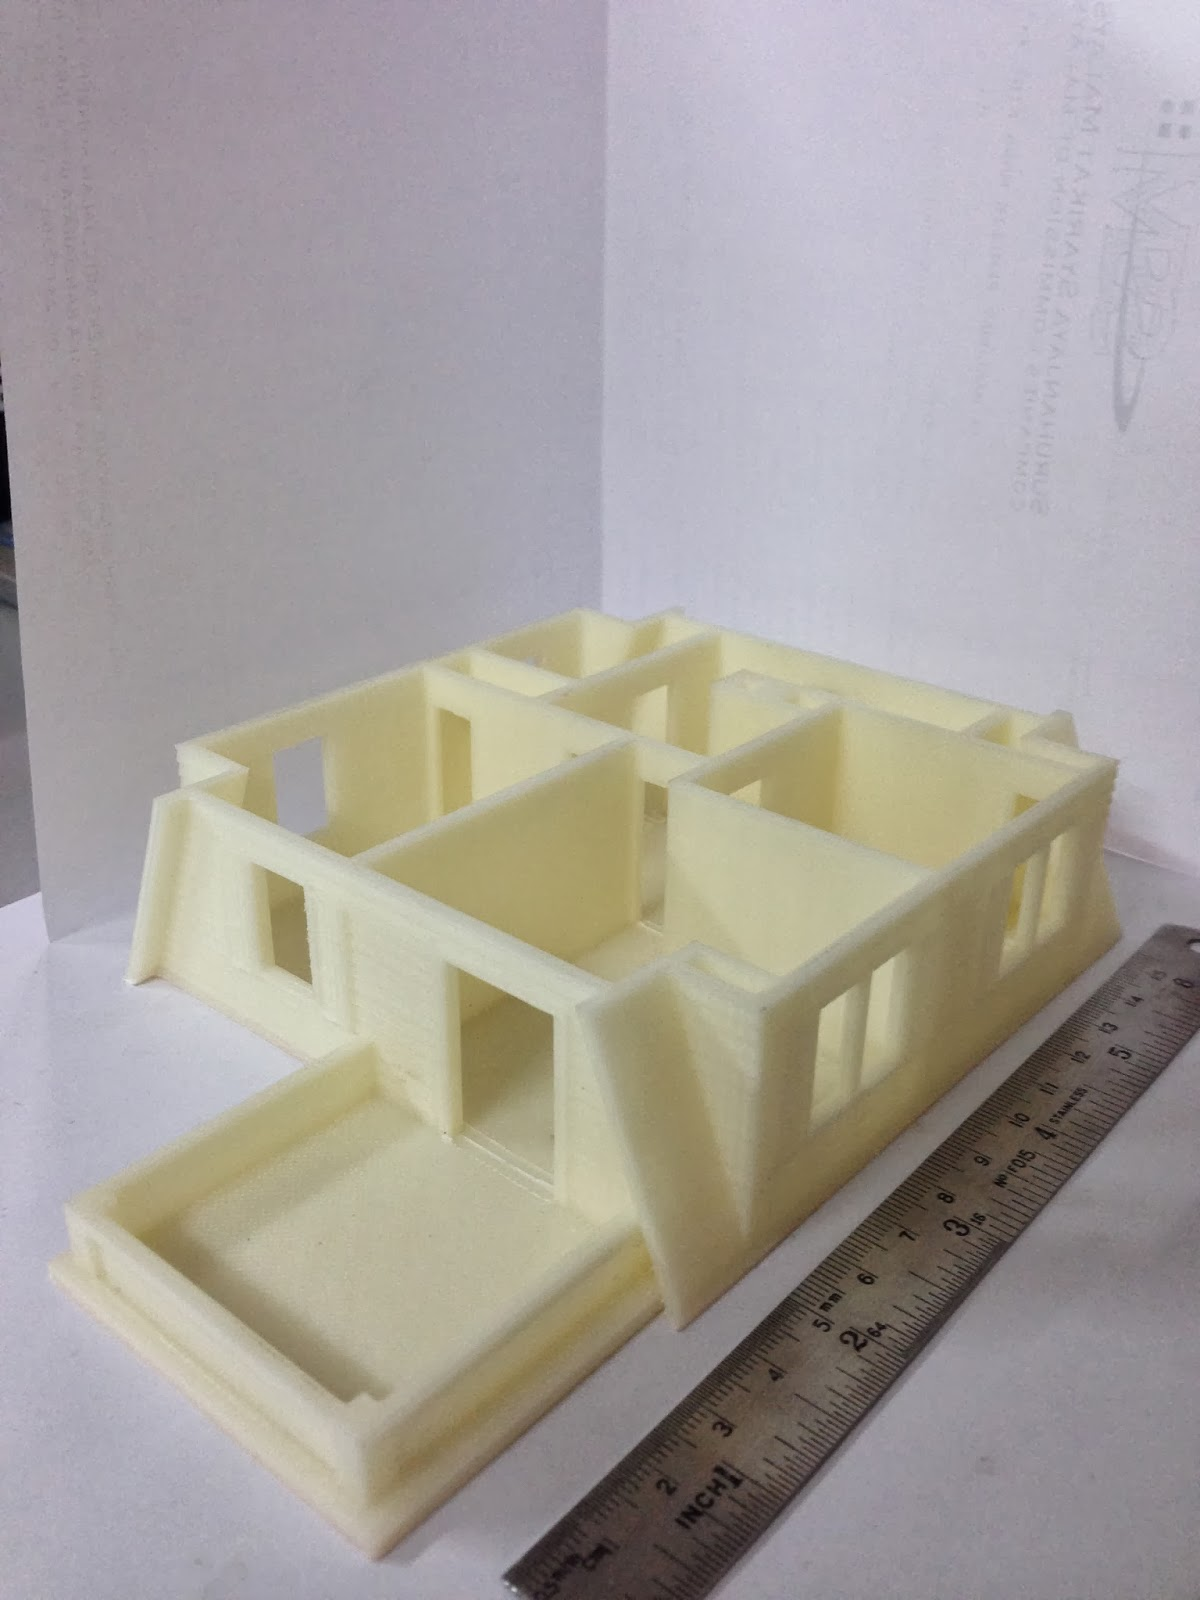 3D Printing Services 3D Printed House Model